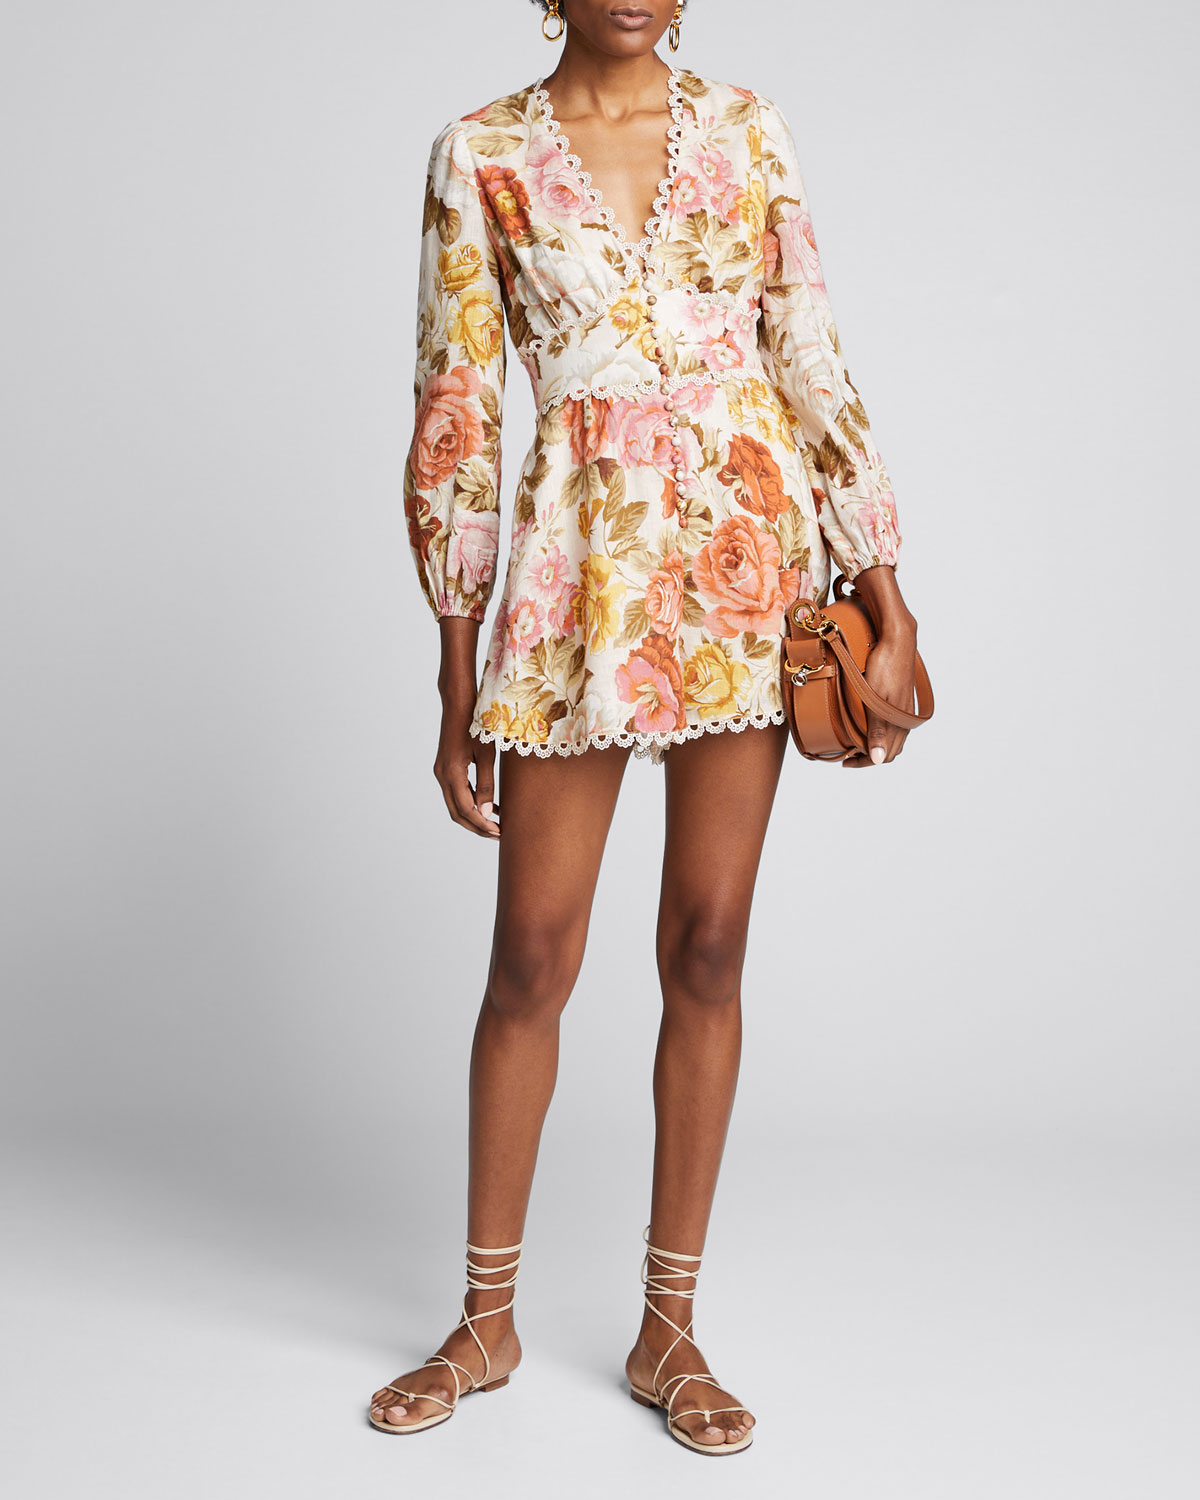 Zimmermann Tops BONITA BUTTON-DOWN FLORAL ROMPER